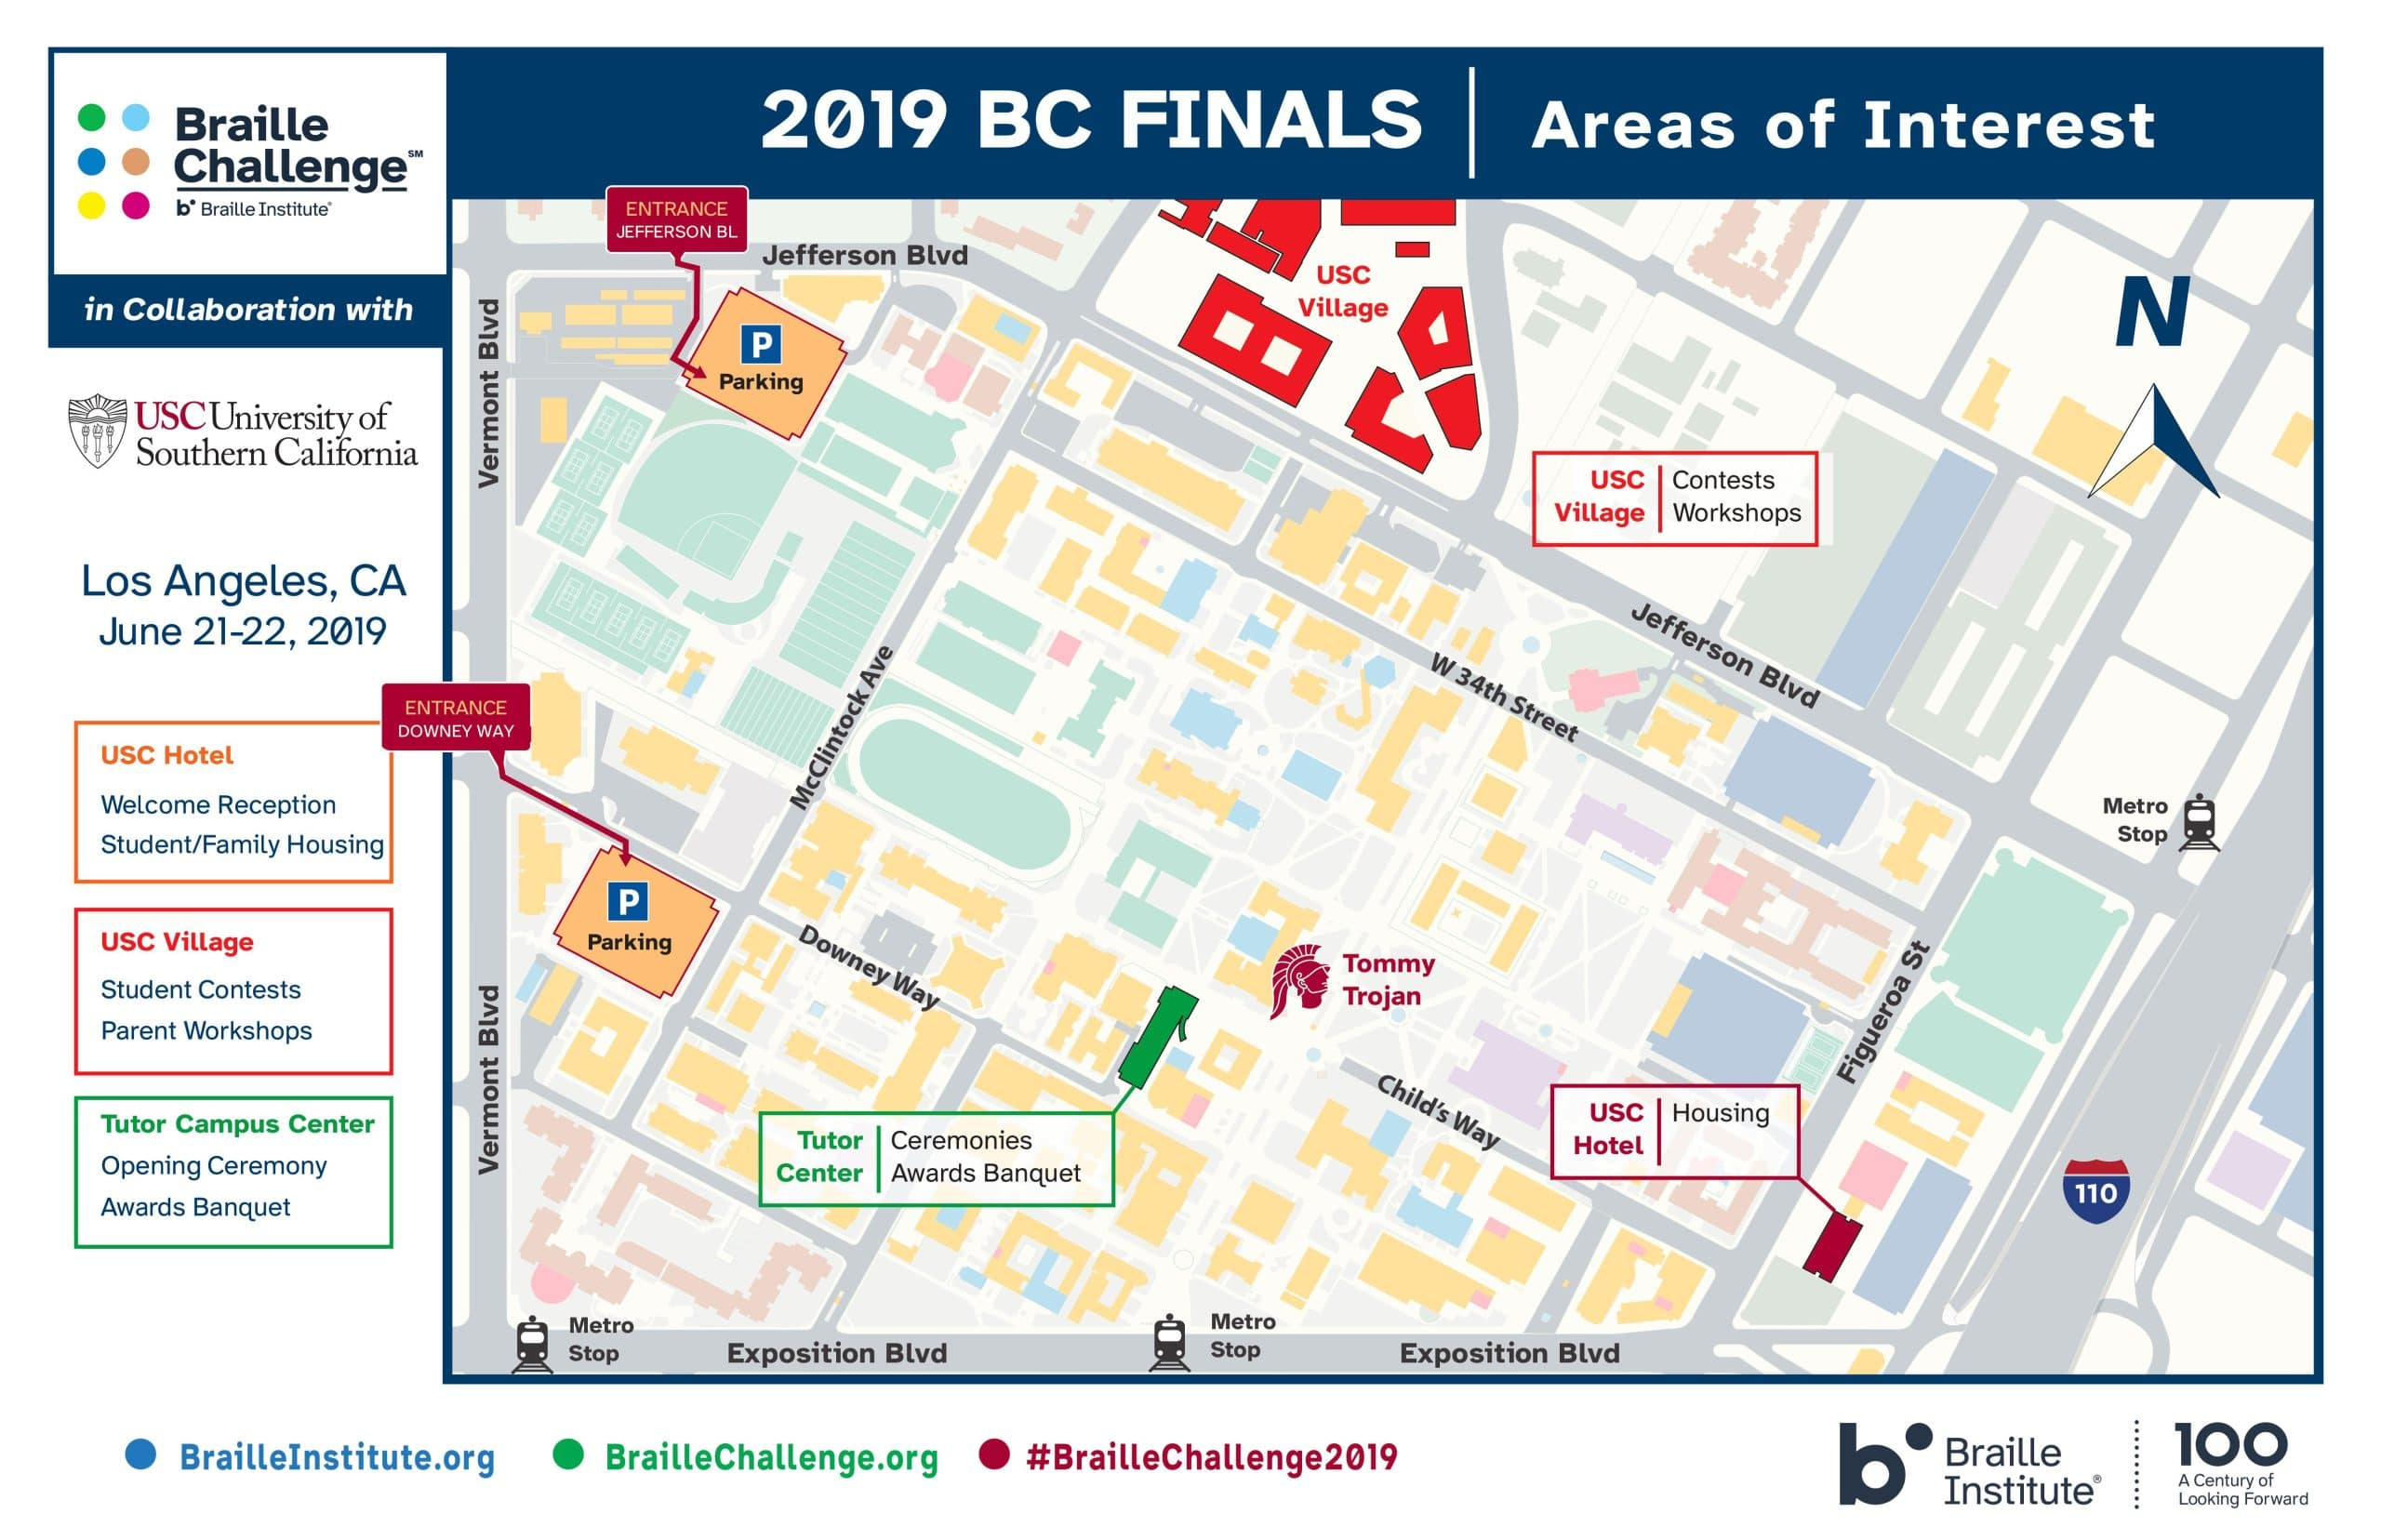 Braille Challenge 2019 Map of USC Campus